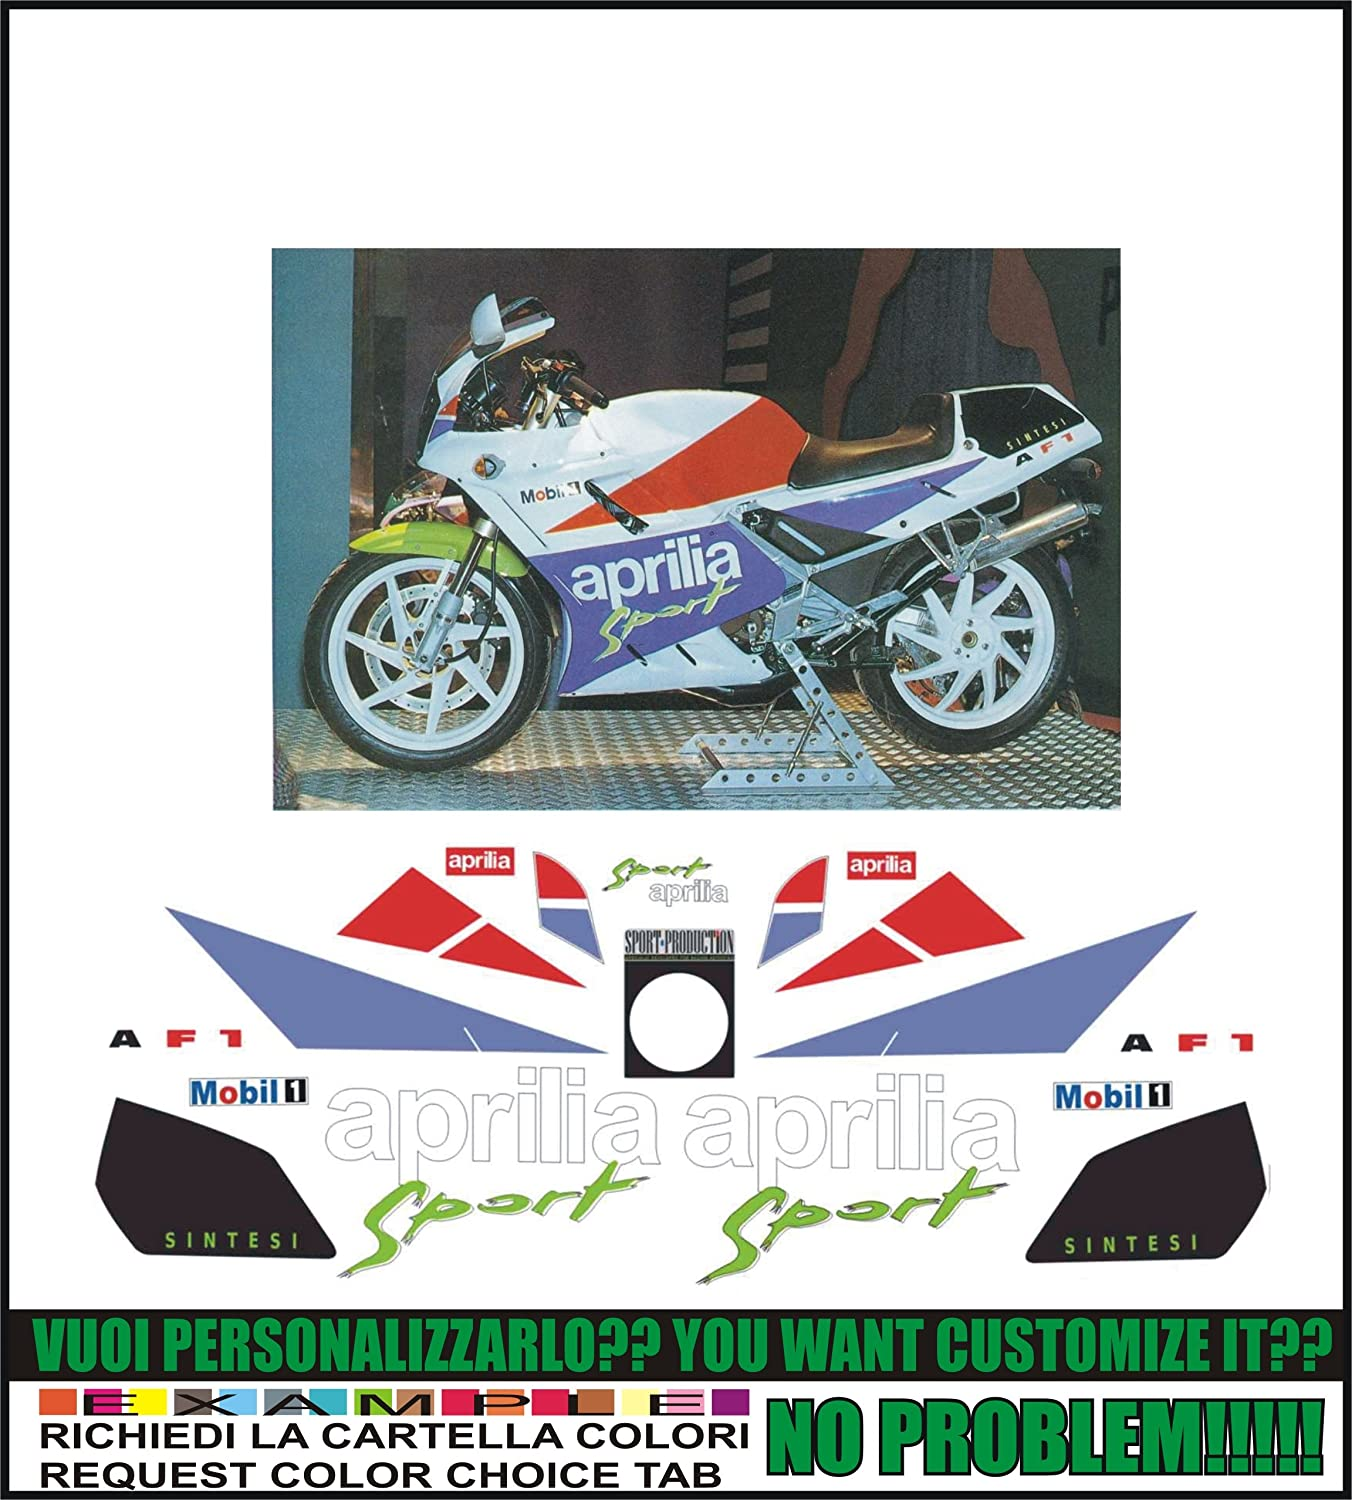 Kit adesivi decal stikers APRILIA AF1 125 SINTESI 1990 SPORT ability to customize the colors